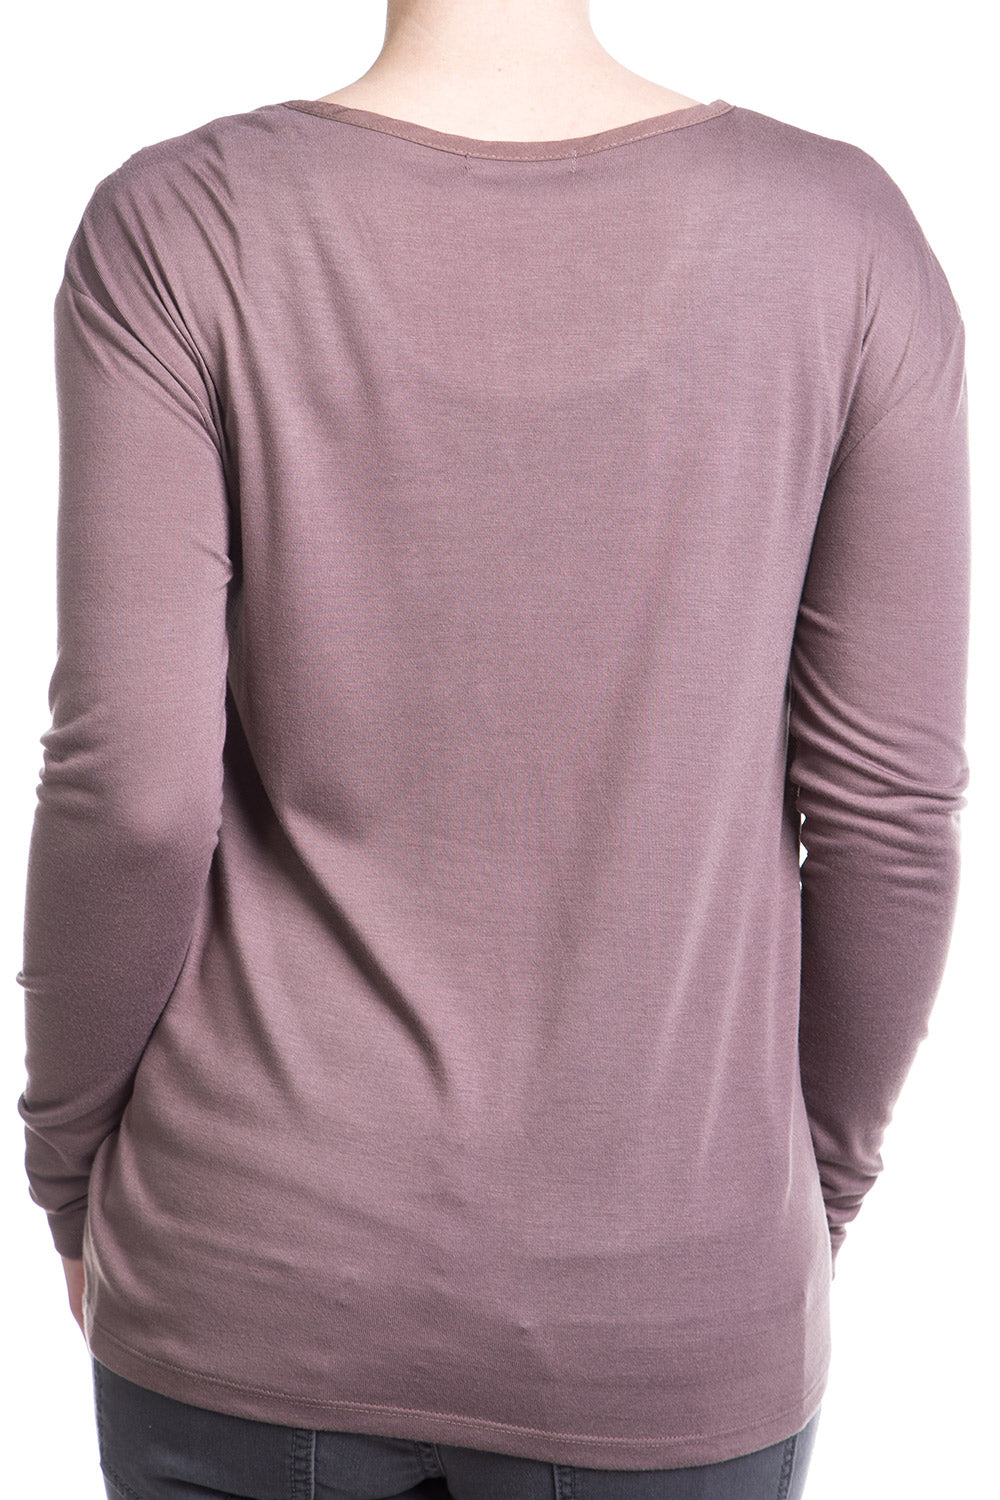 Type 2 In An Instant Top in Taupe